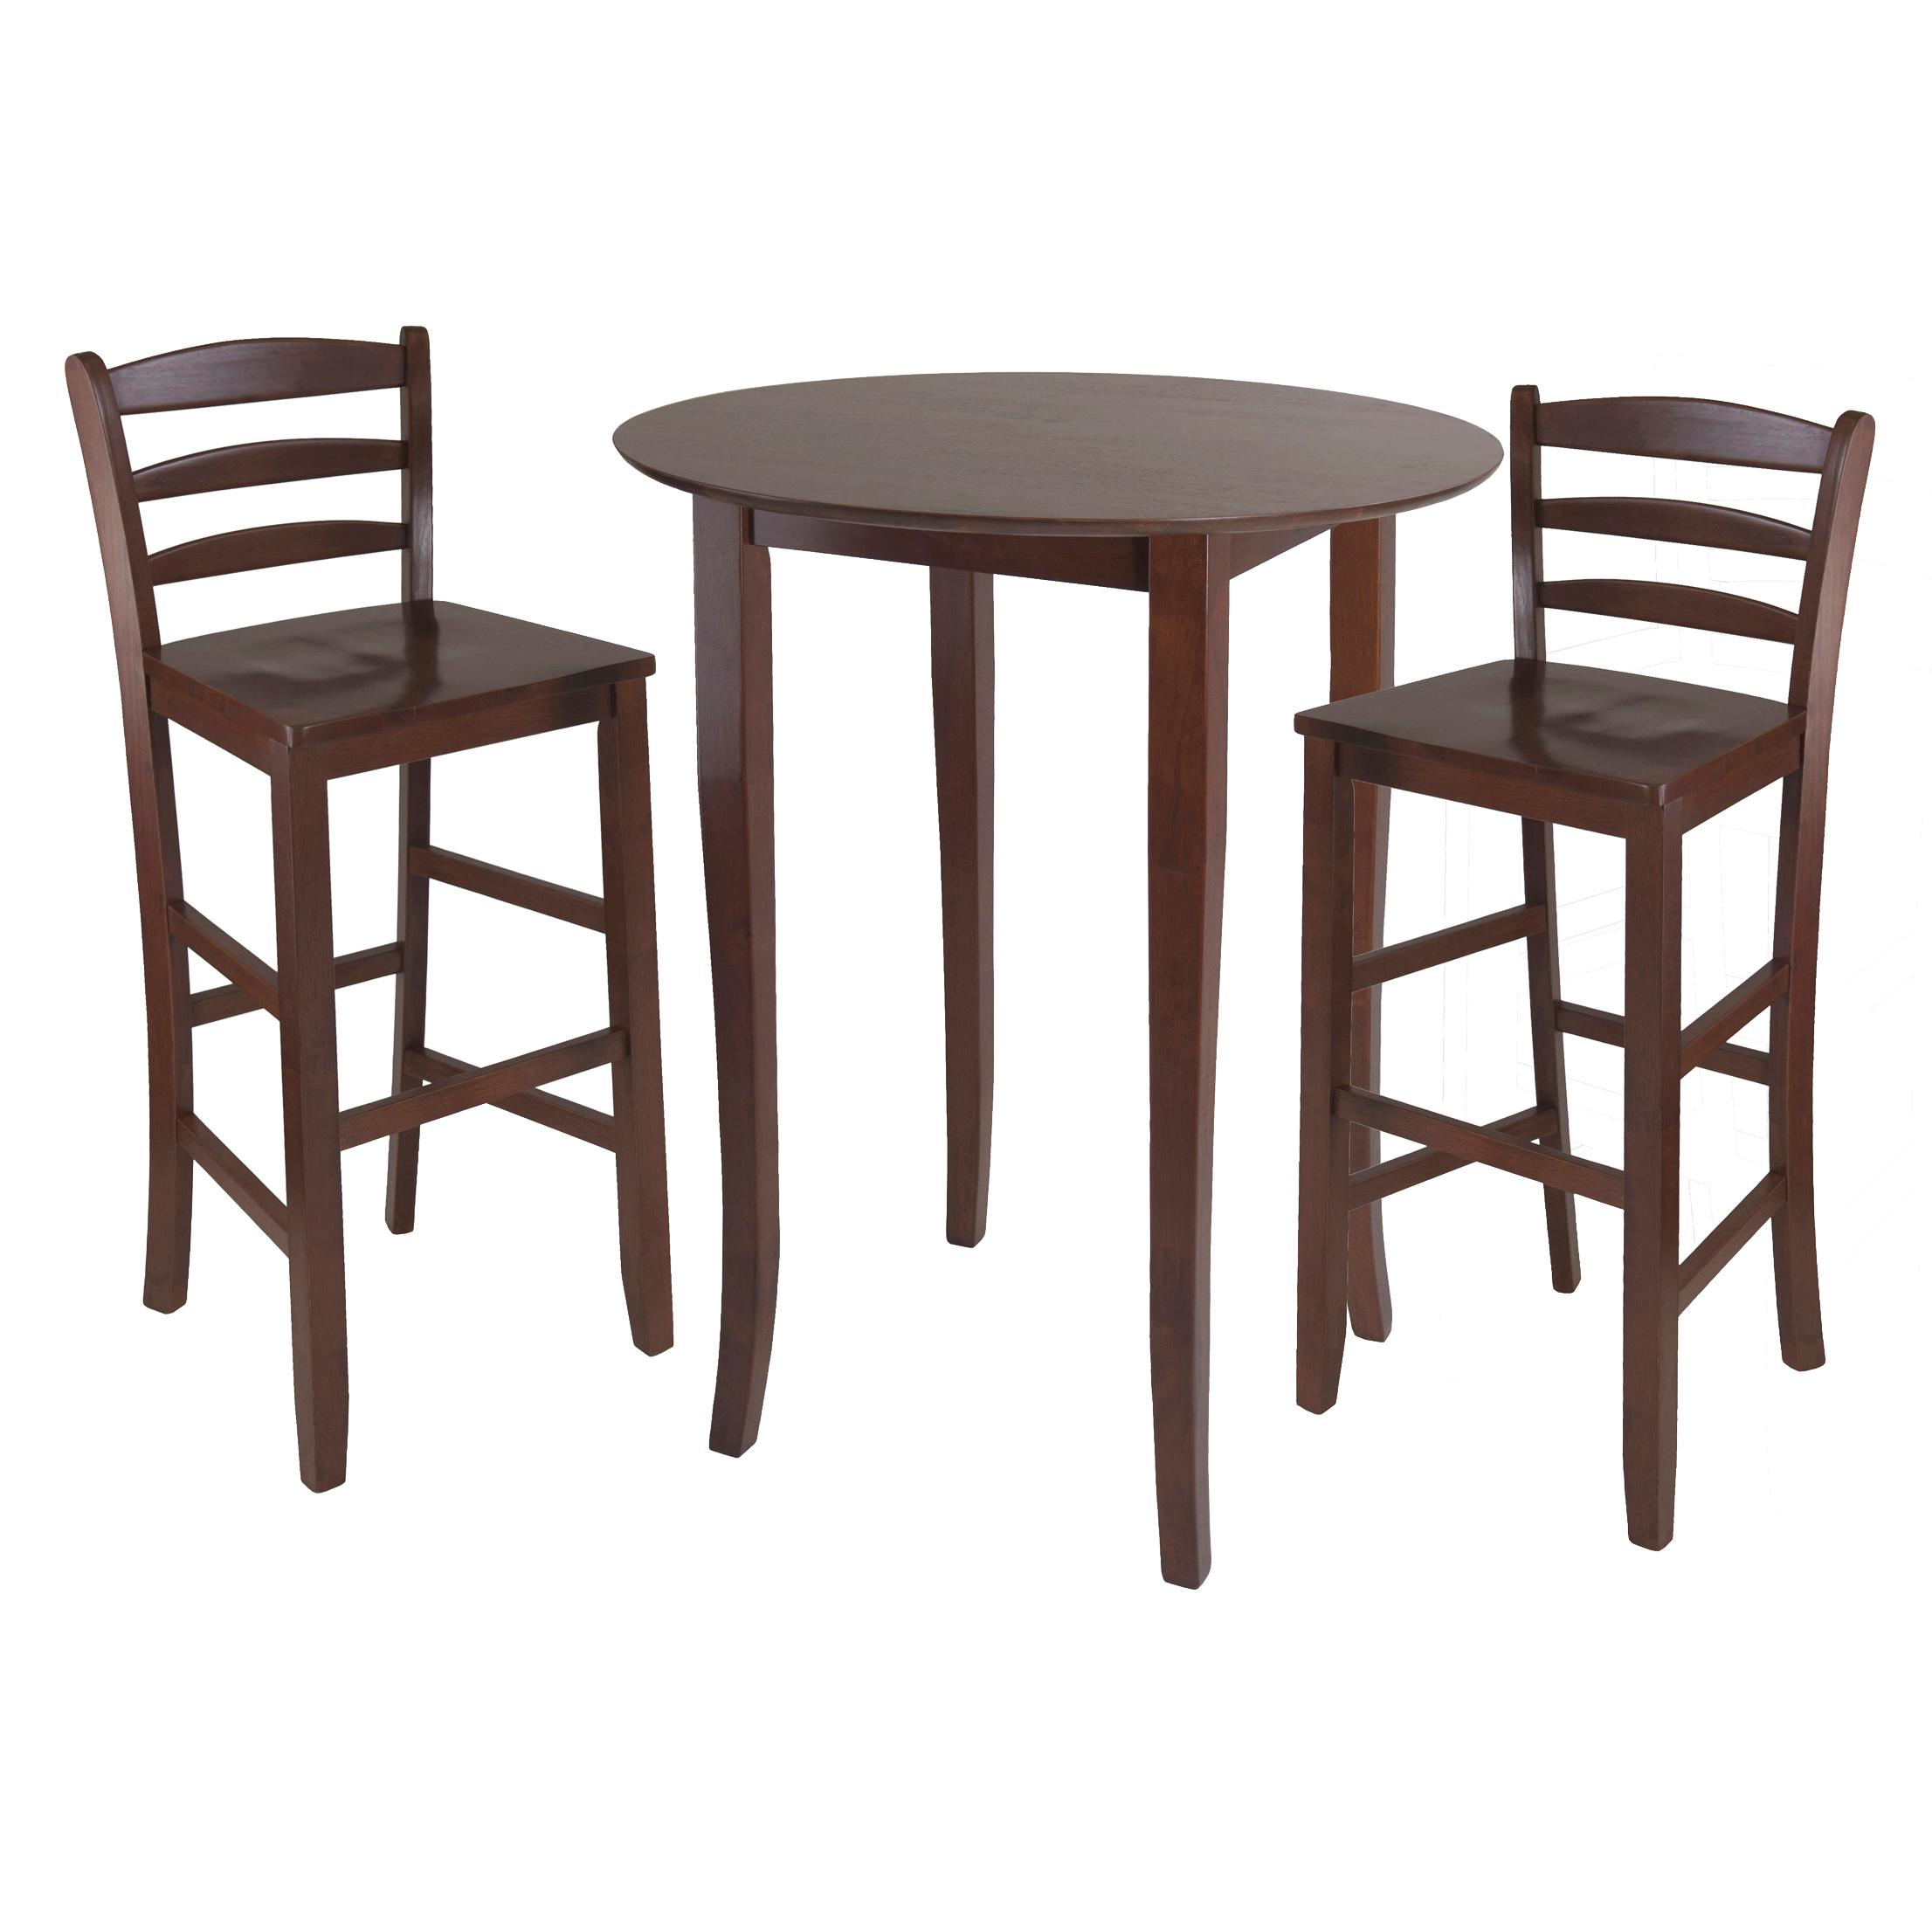 View larger  sc 1 st  Amazon.com : high round table and stools - islam-shia.org